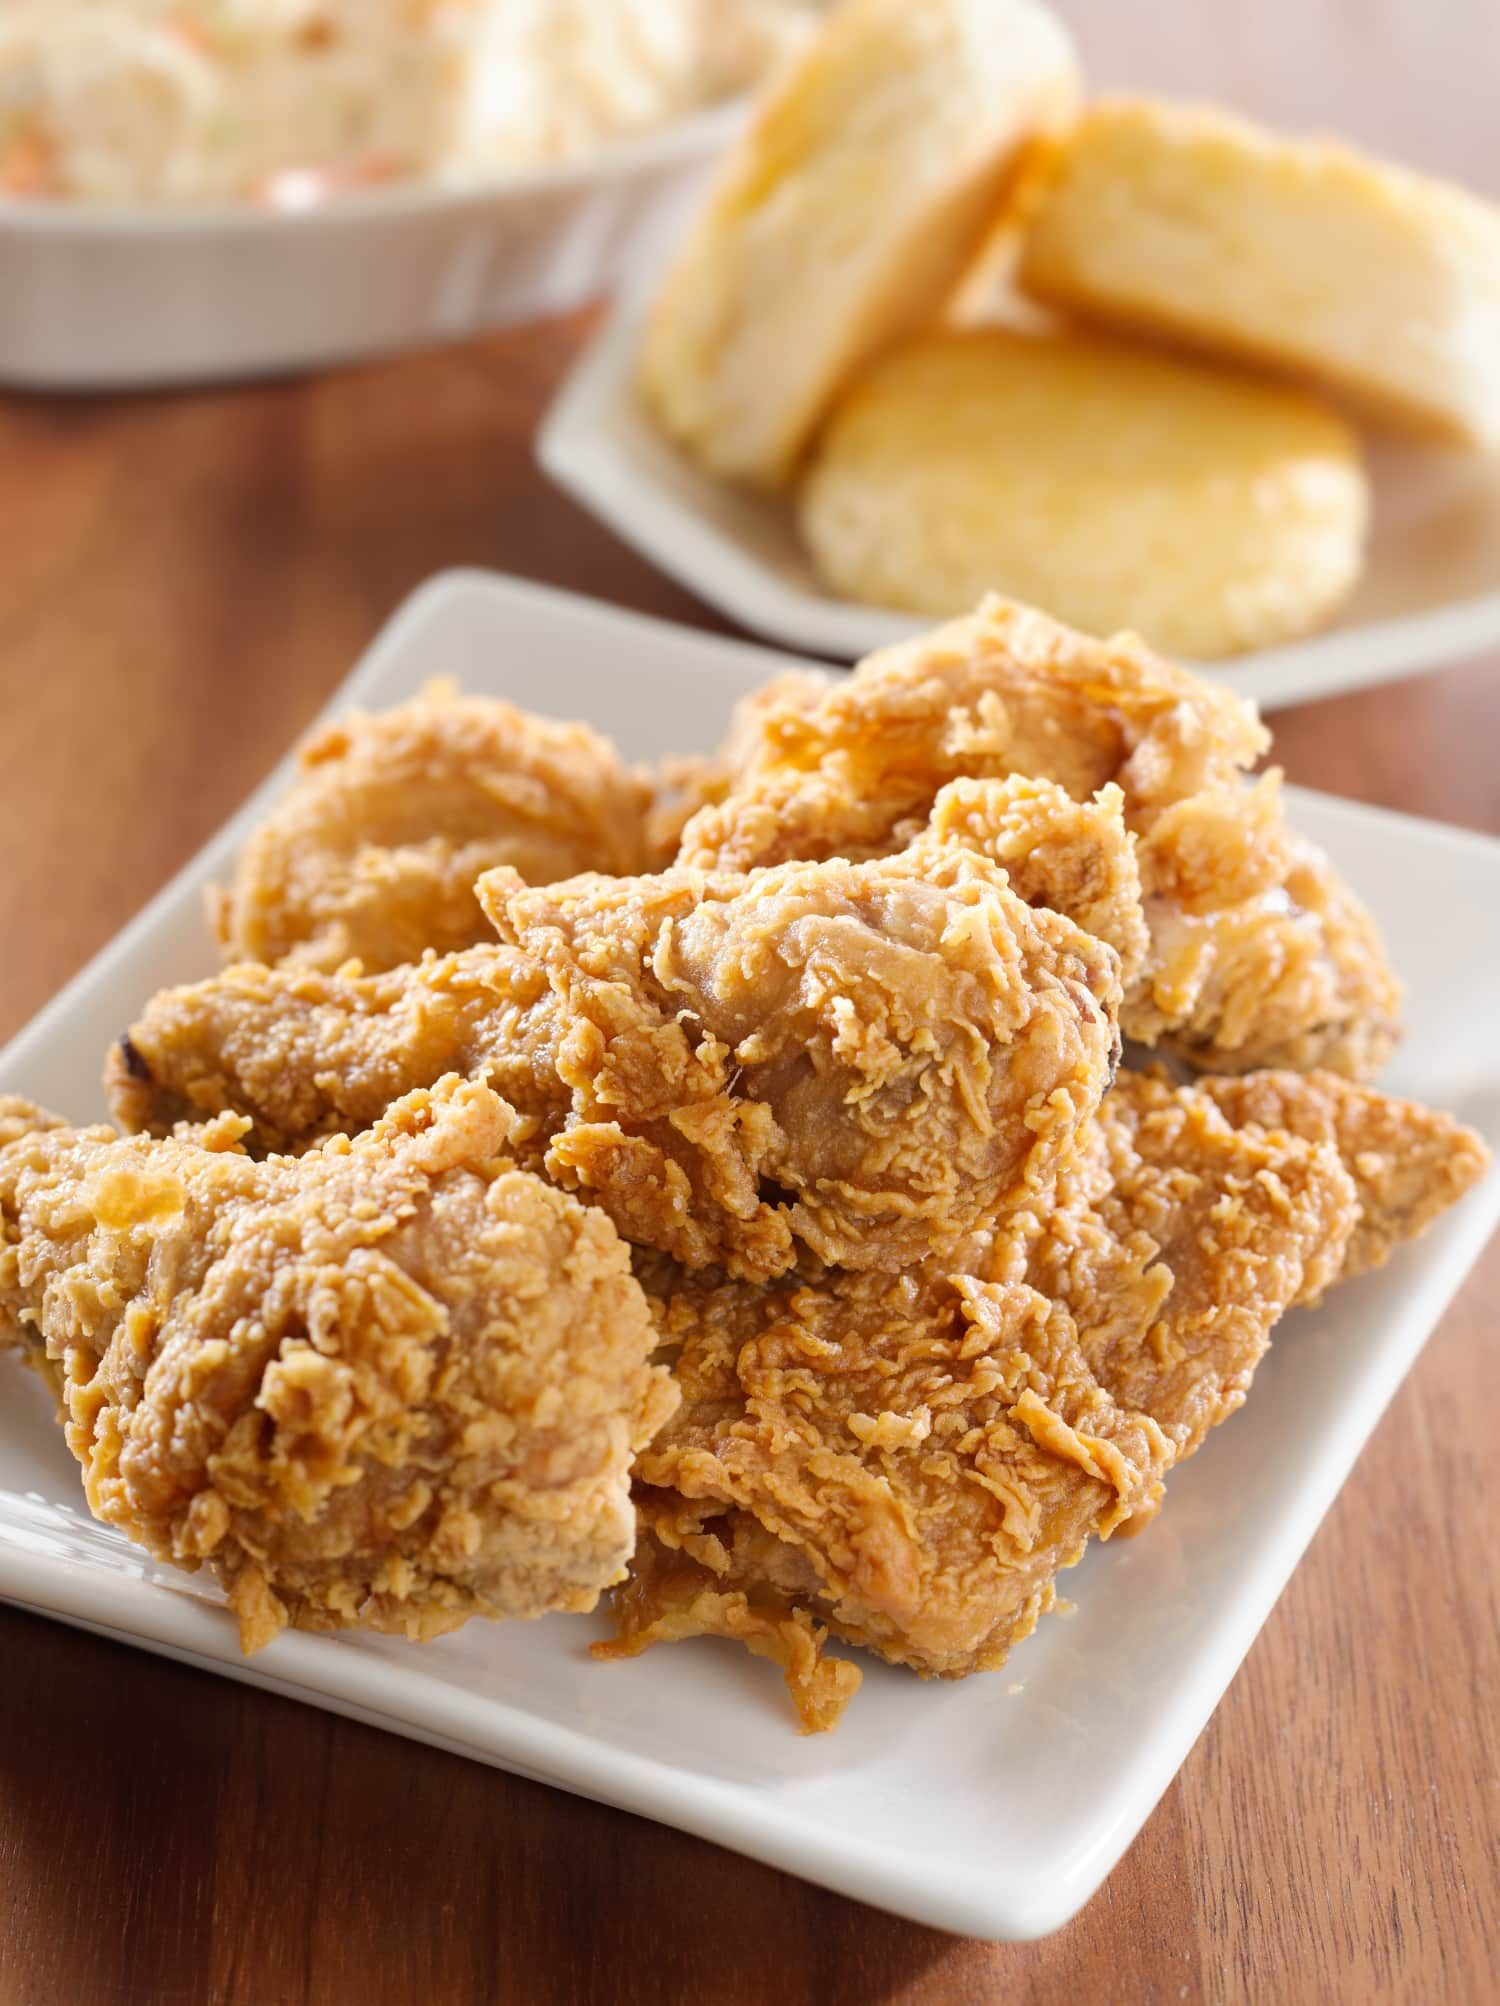 This One Tip Makes Homemade Fried Chicken Way More Fun Fries In The Oven Fried Chicken Fried Chicken Recipes